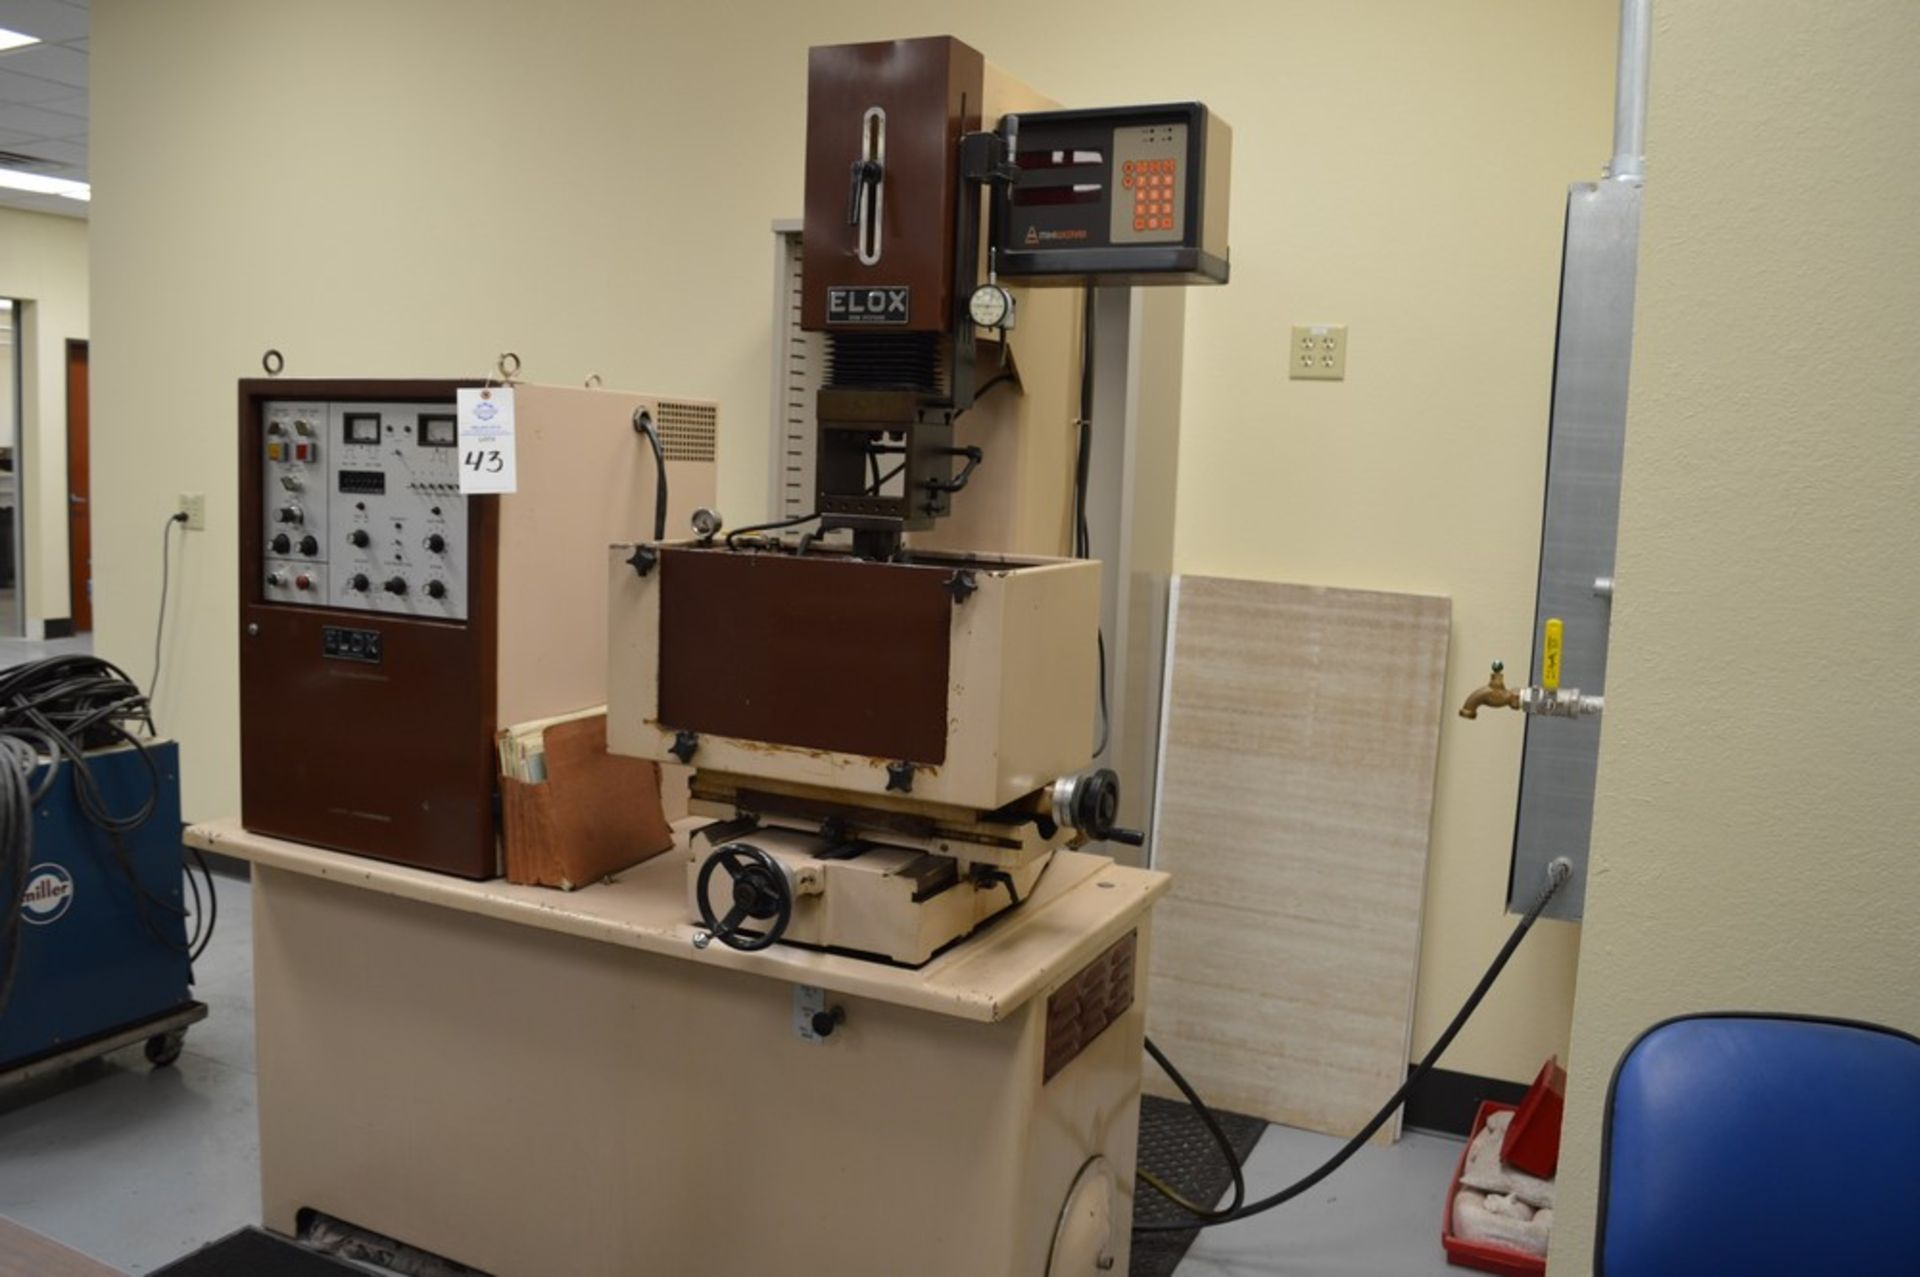 Elox small hole Plunge EDM Systems submersible EDM, Analam mini wizard DRO, benchtop model, 16 x 8 - Image 2 of 8